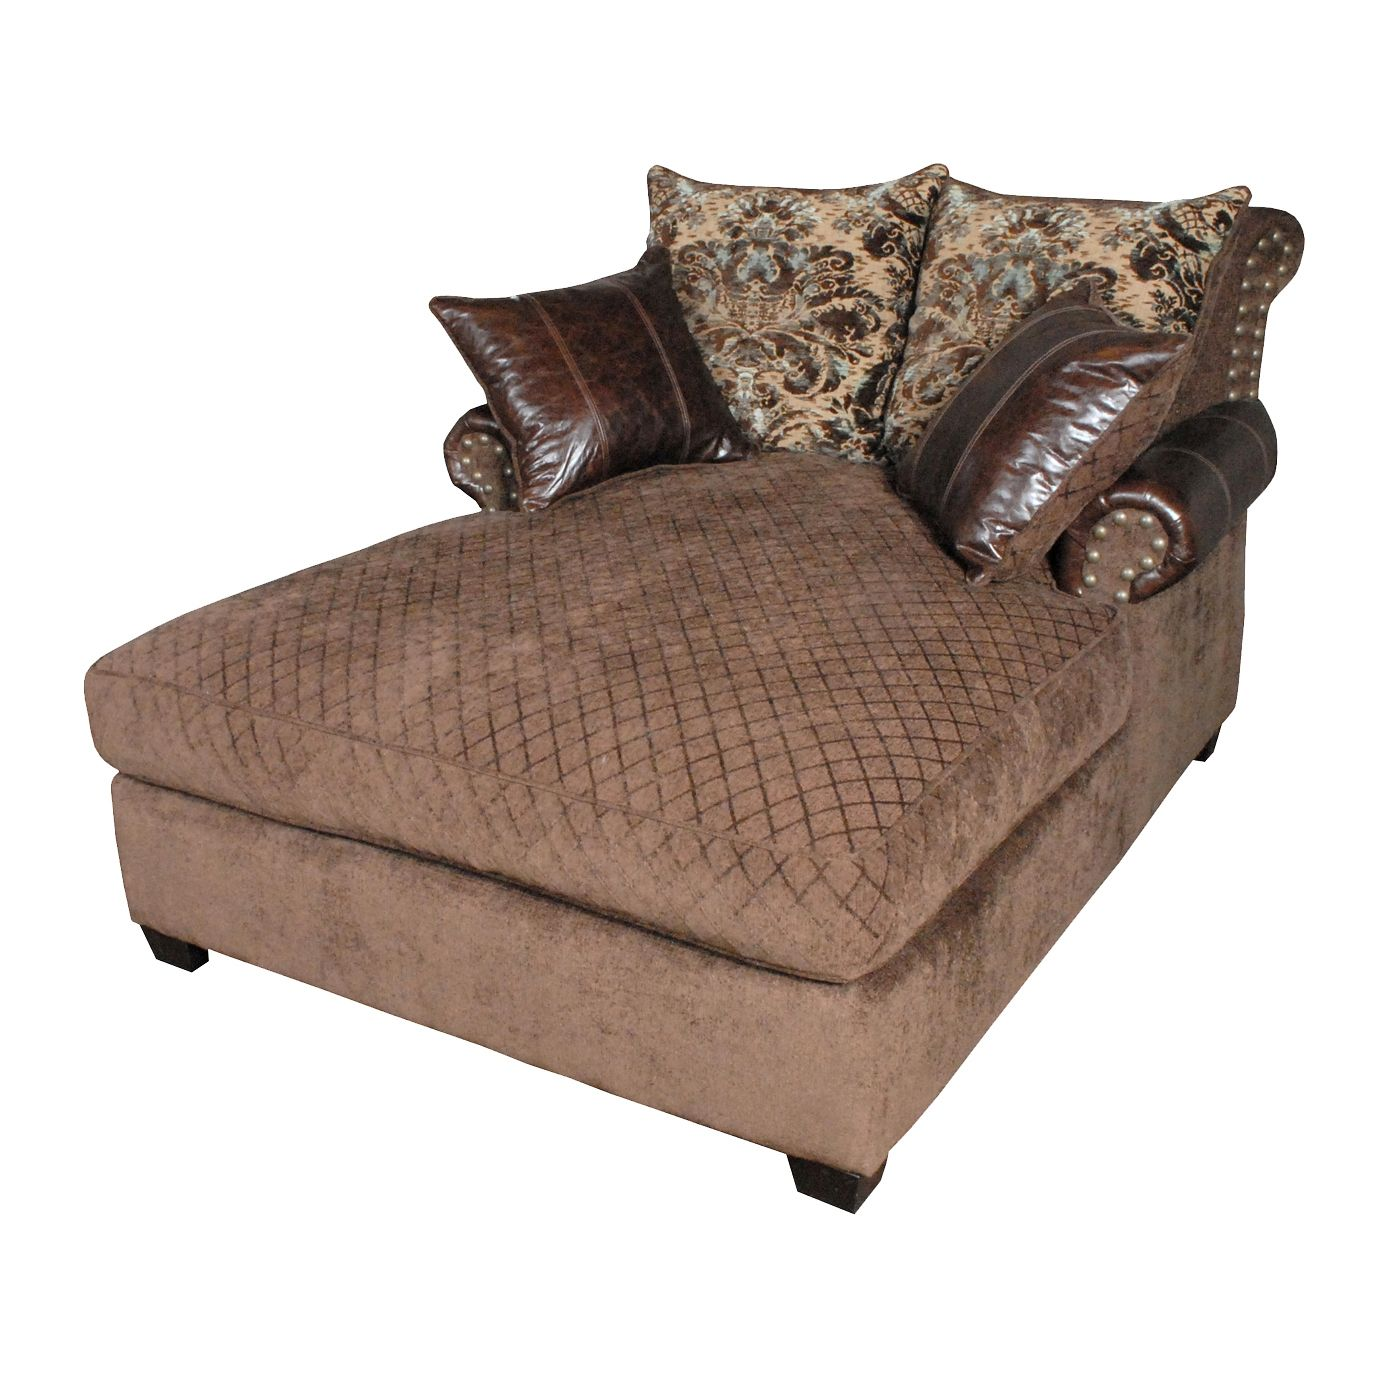 Indoor Double Chaise Lounge More Sales Categories